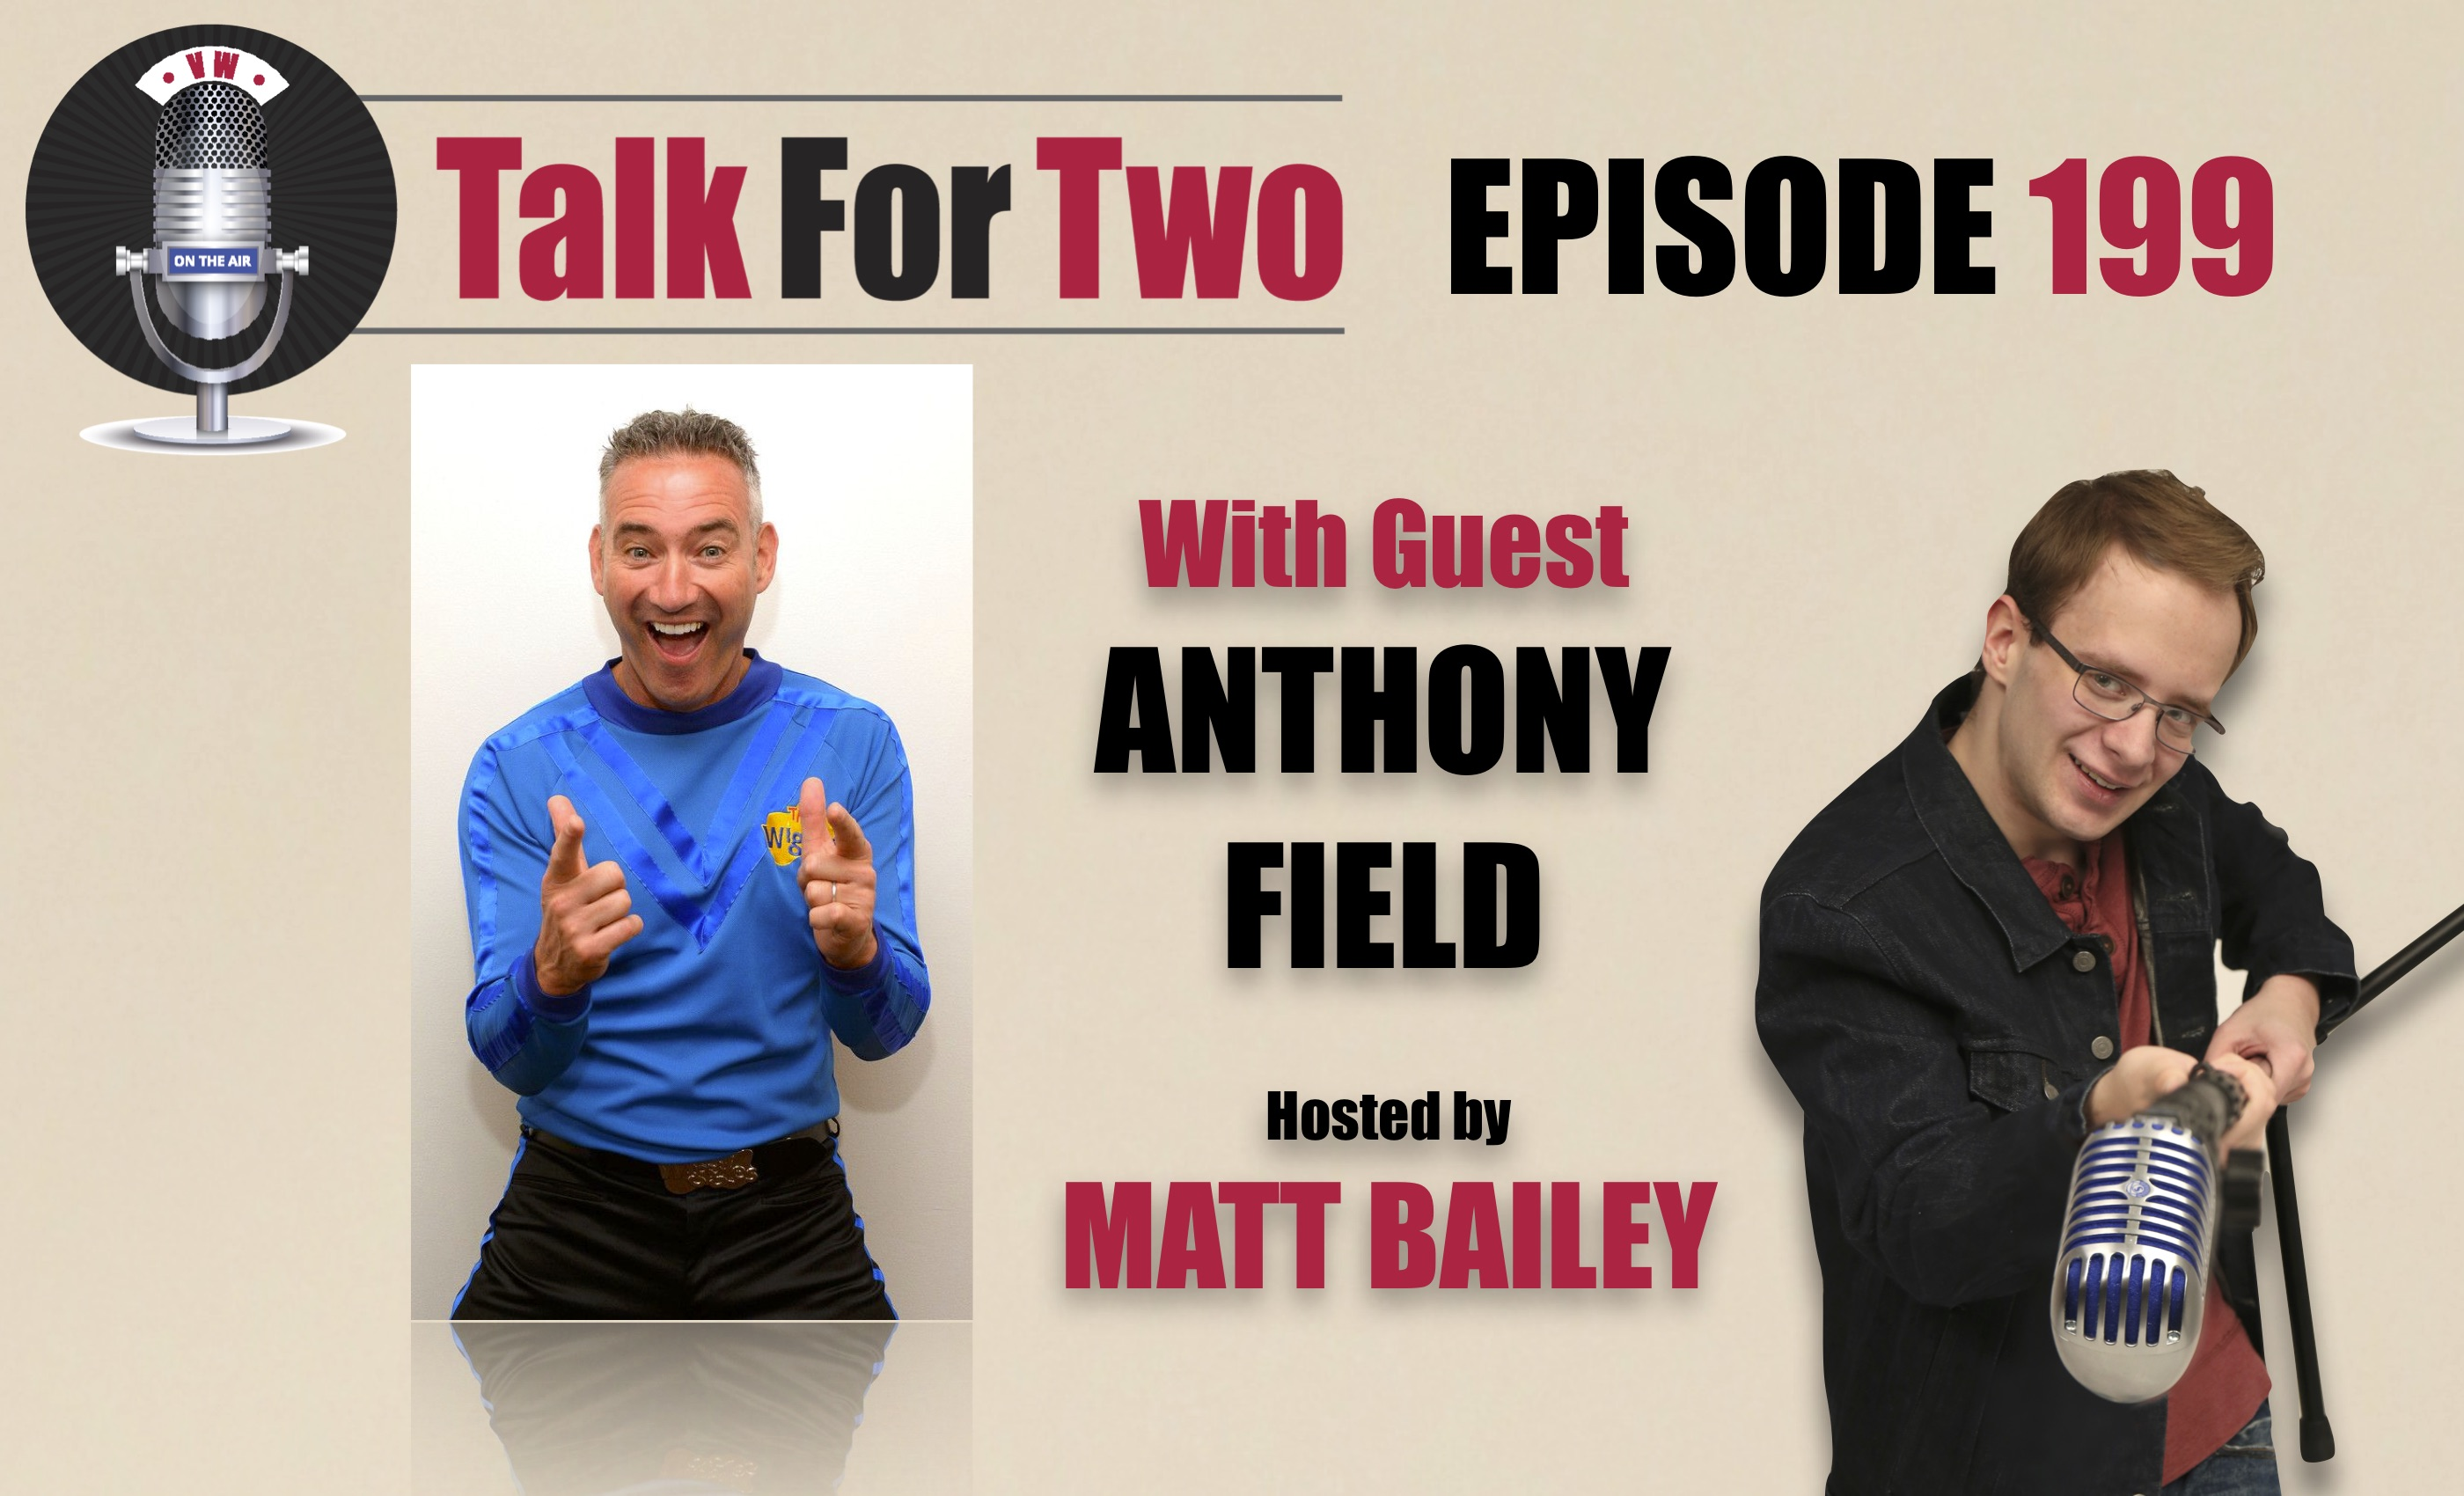 Anthony_Field, The_Wiggles, Talk_For_Two, Matt_Bailey